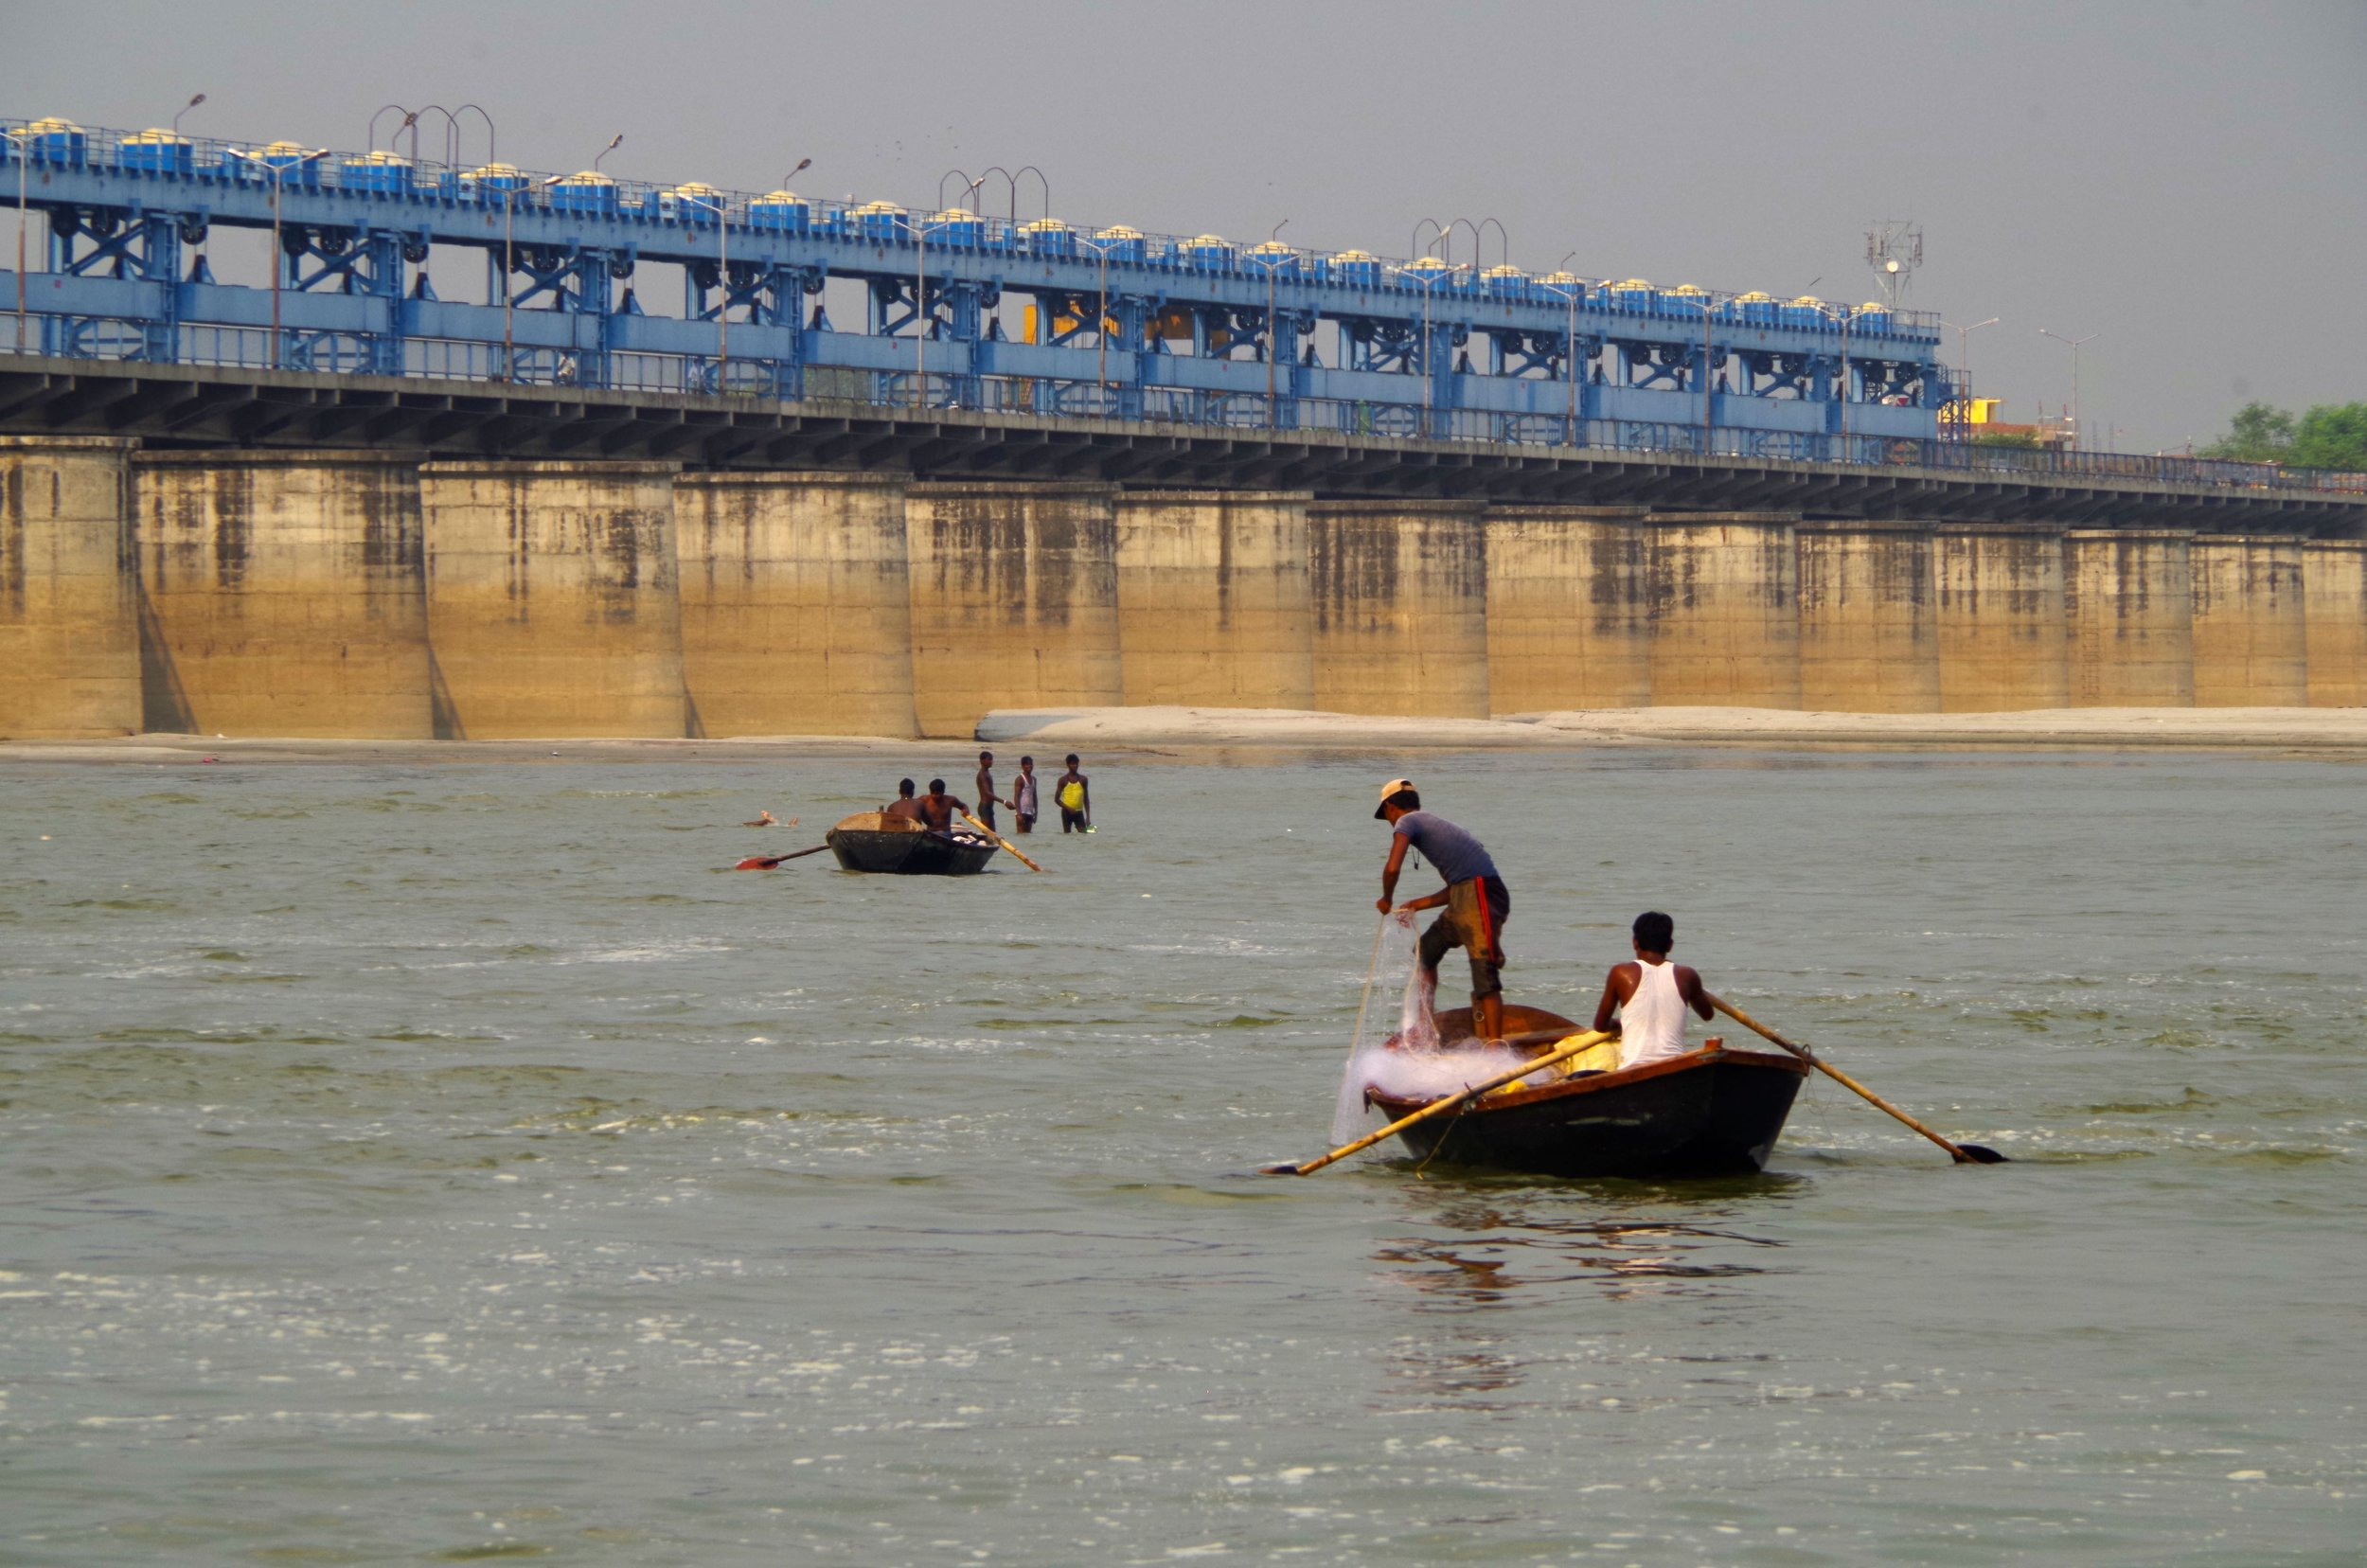 Multi-sectoral water use (hydropower, water supply, flood control, fishing, bathing) along the Ganges River, India